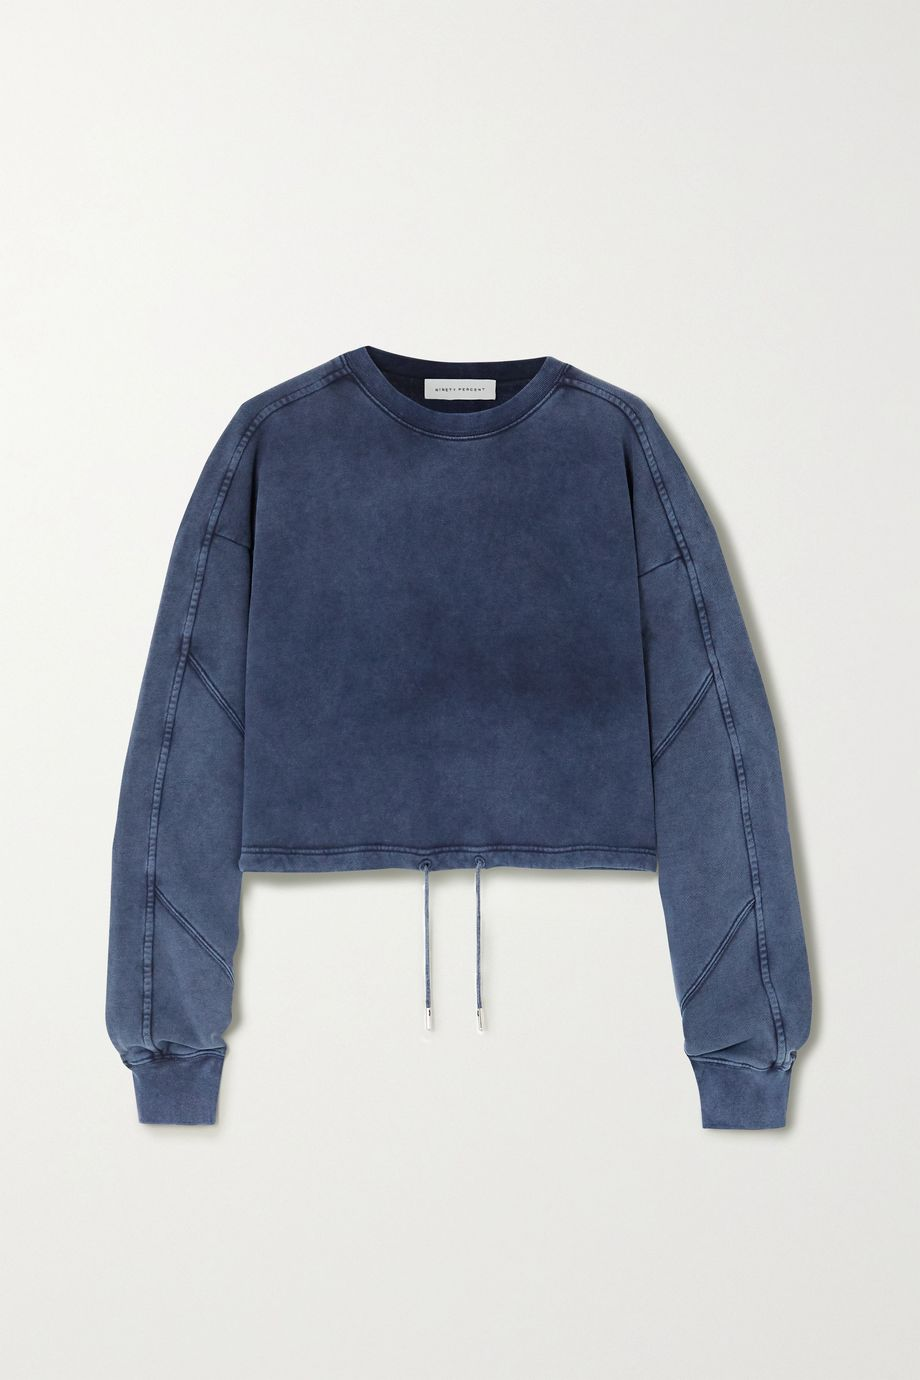 Ninety Percent Cropped paneled organic cotton-jersey sweatshirt